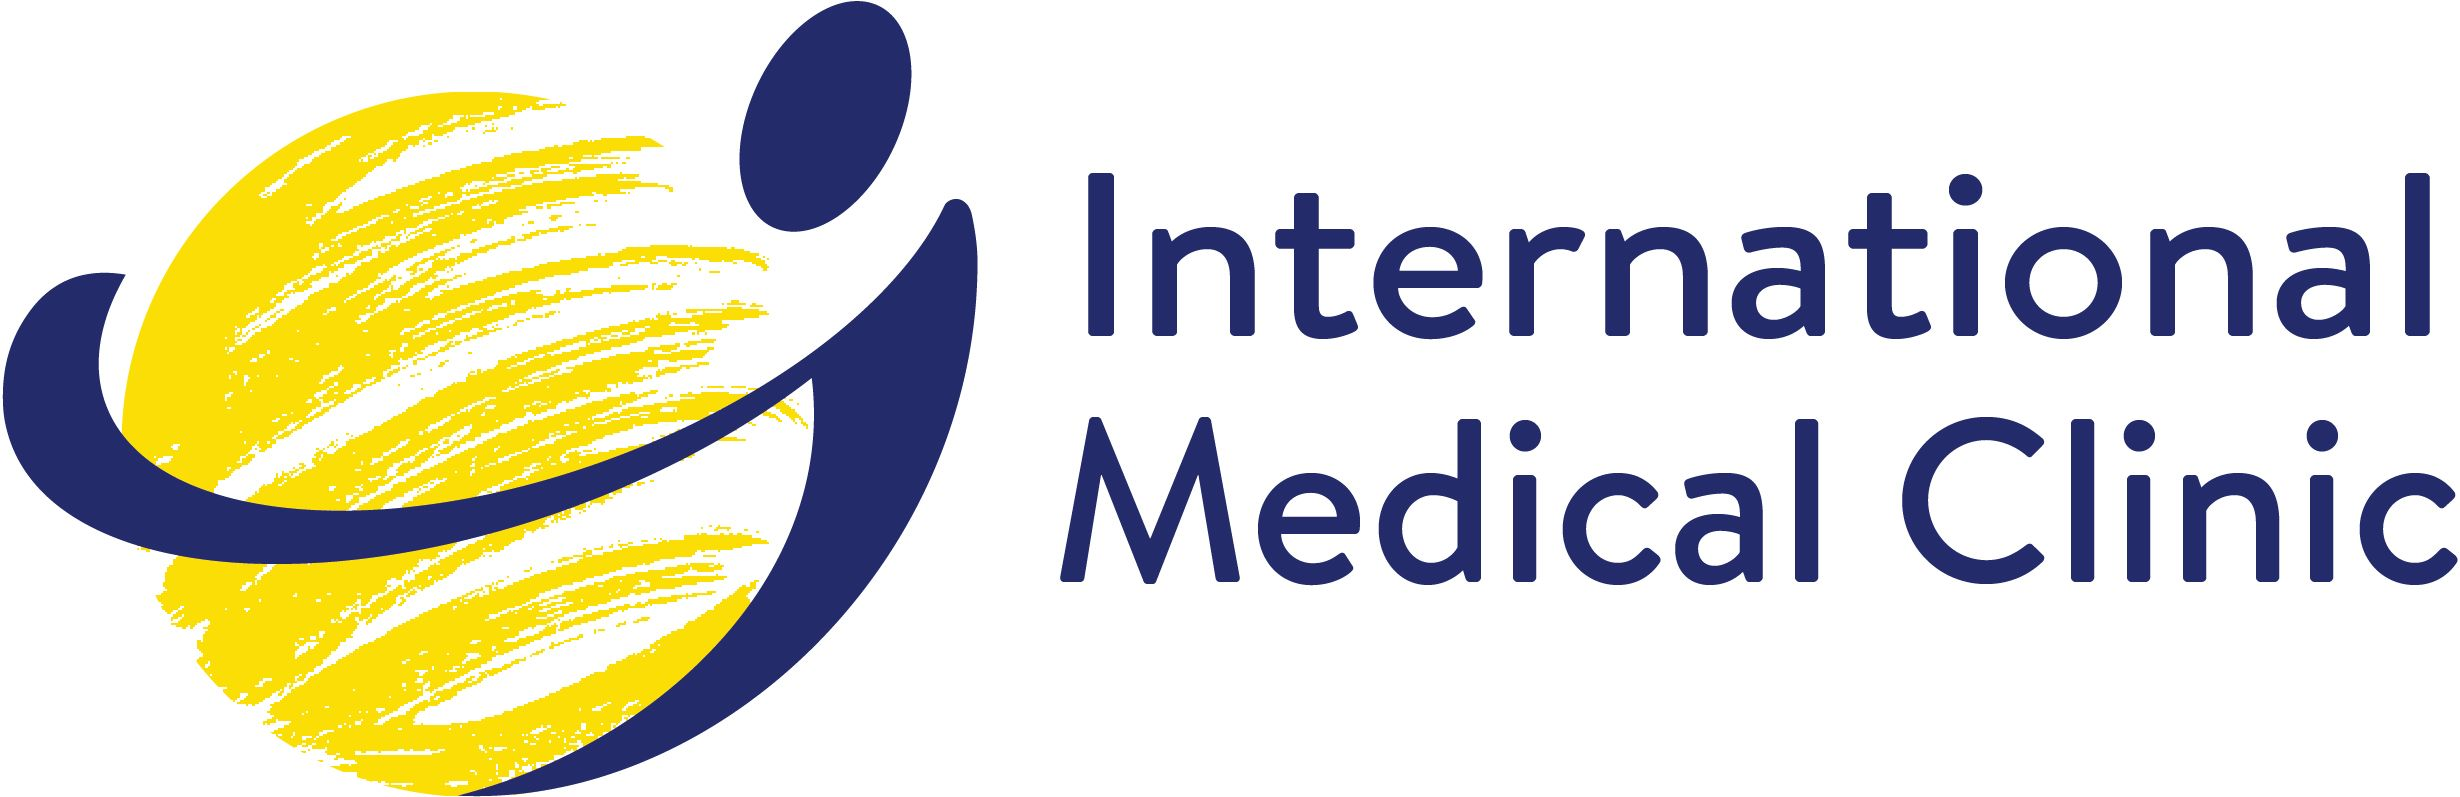 International Medical Clinic